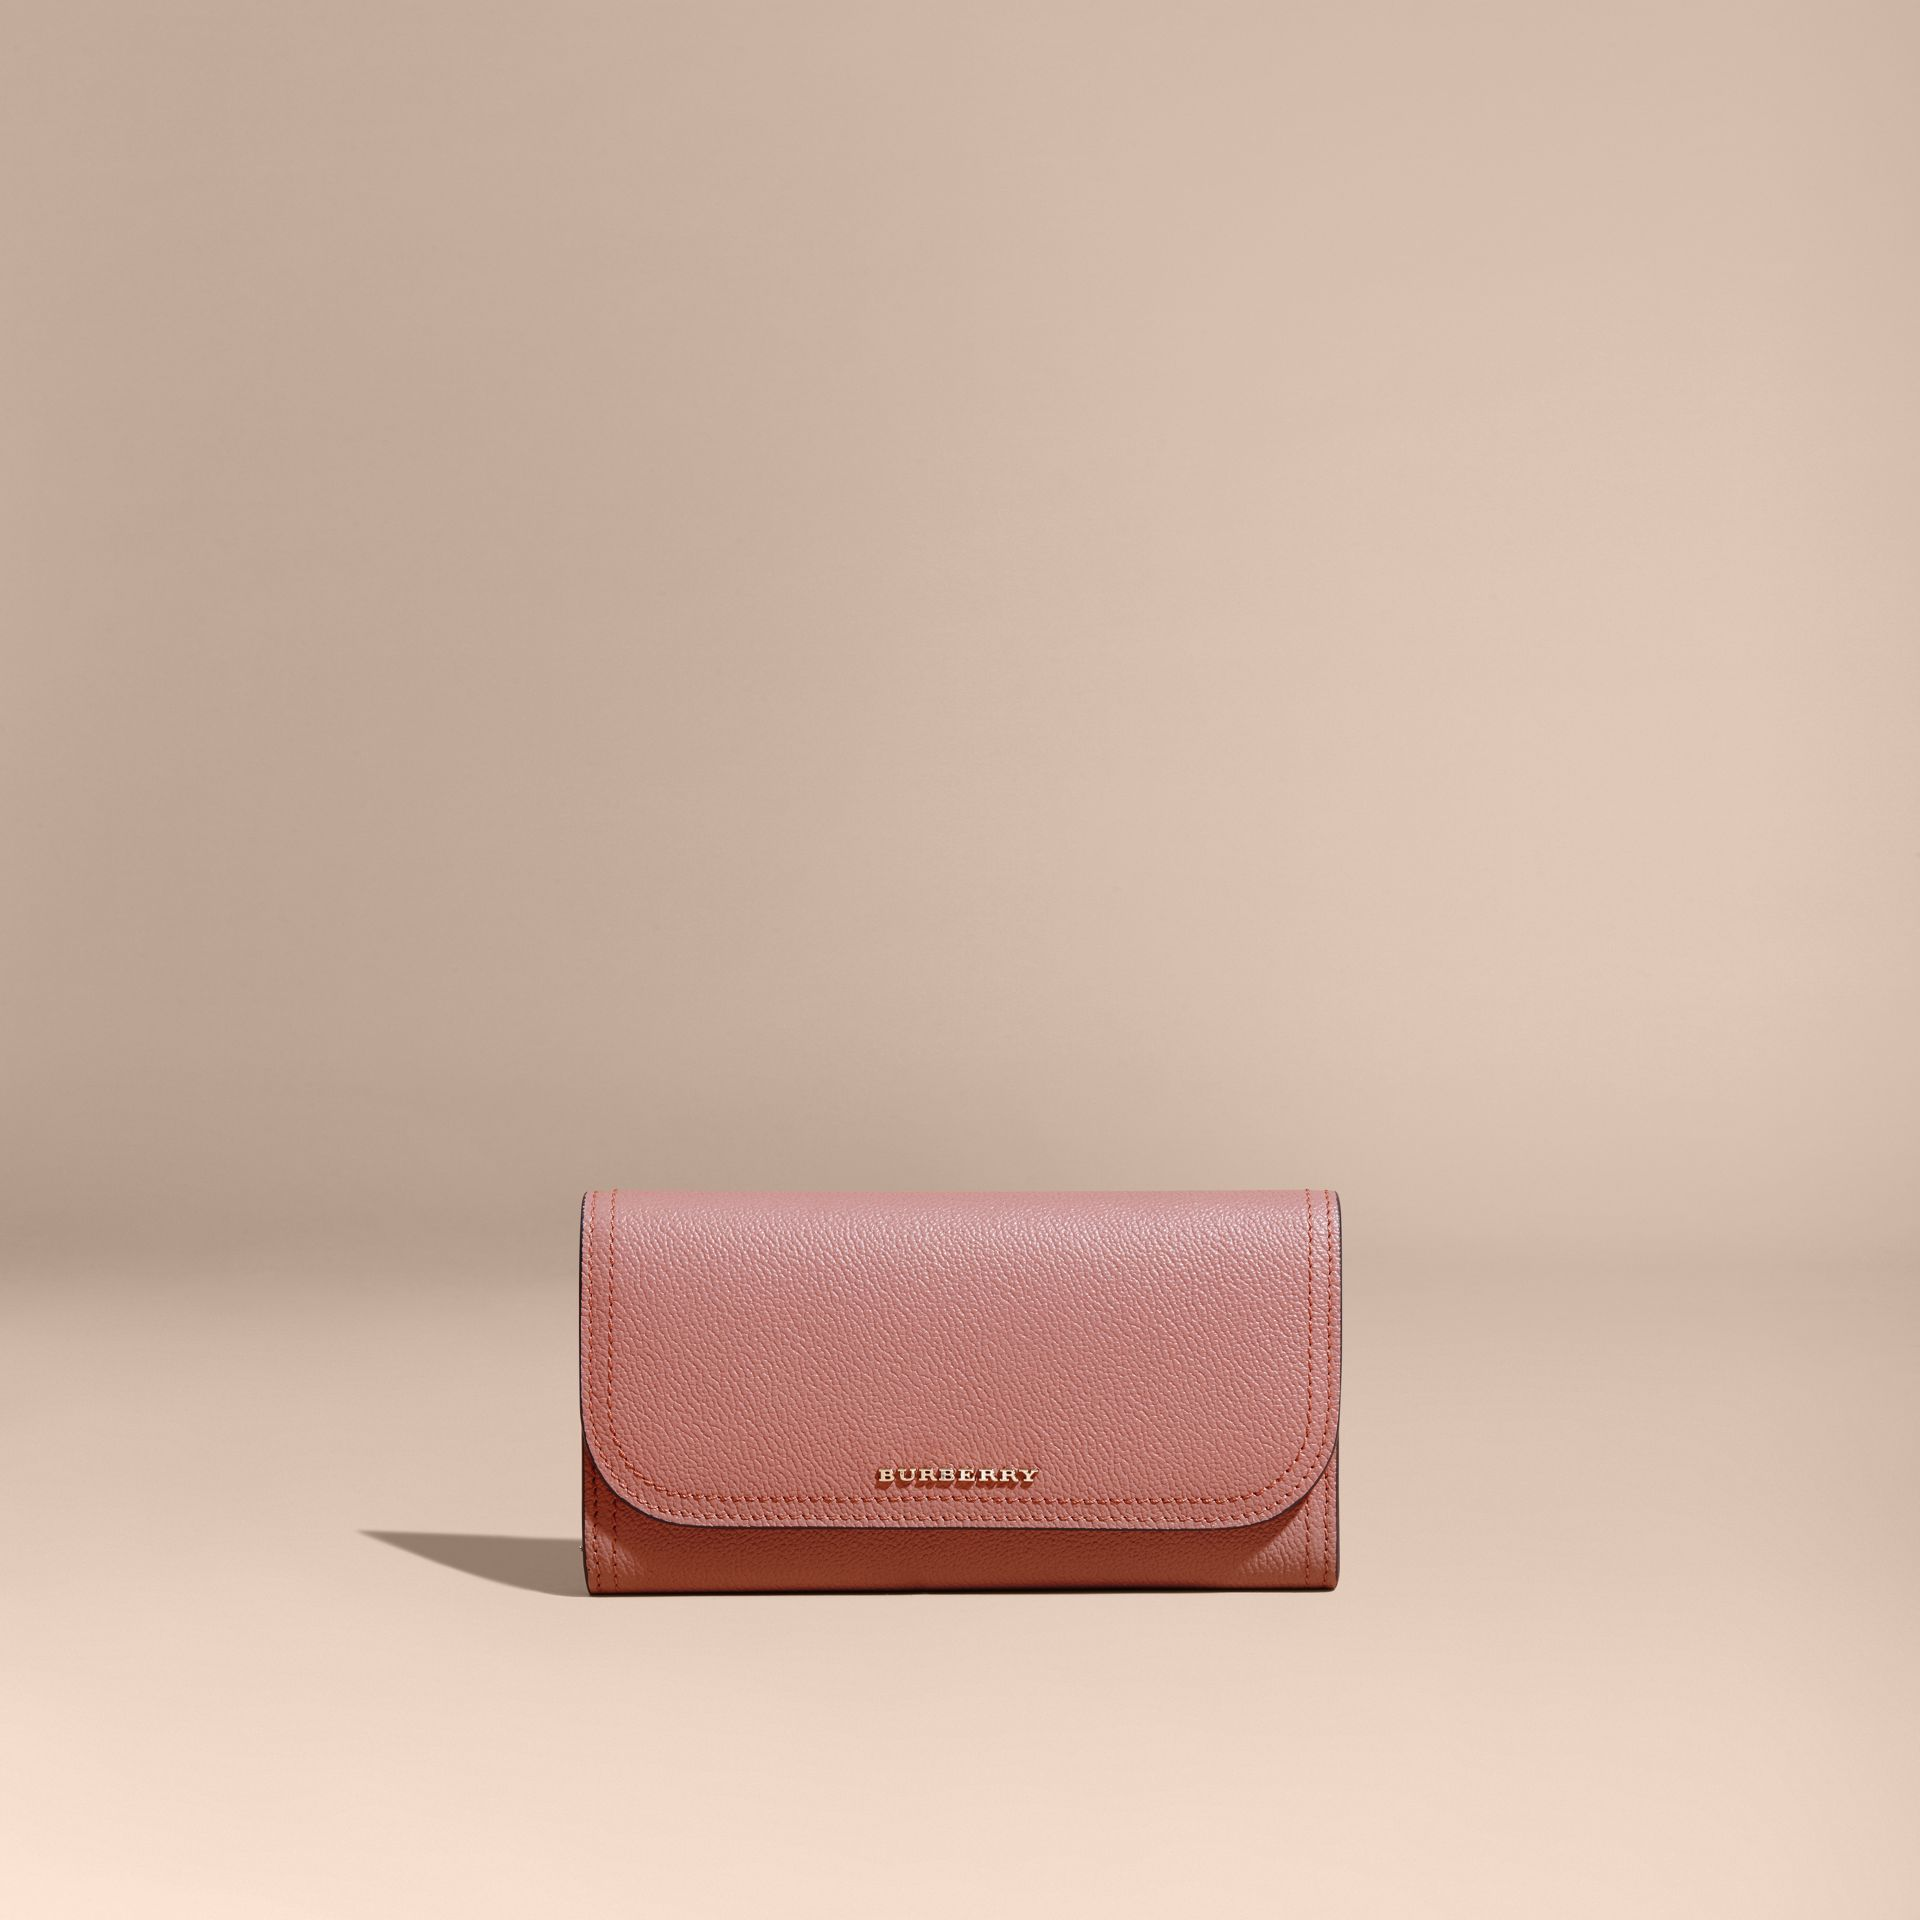 Grainy Leather Slim Continental Wallet in Dusty Pink - Women | Burberry - gallery image 7